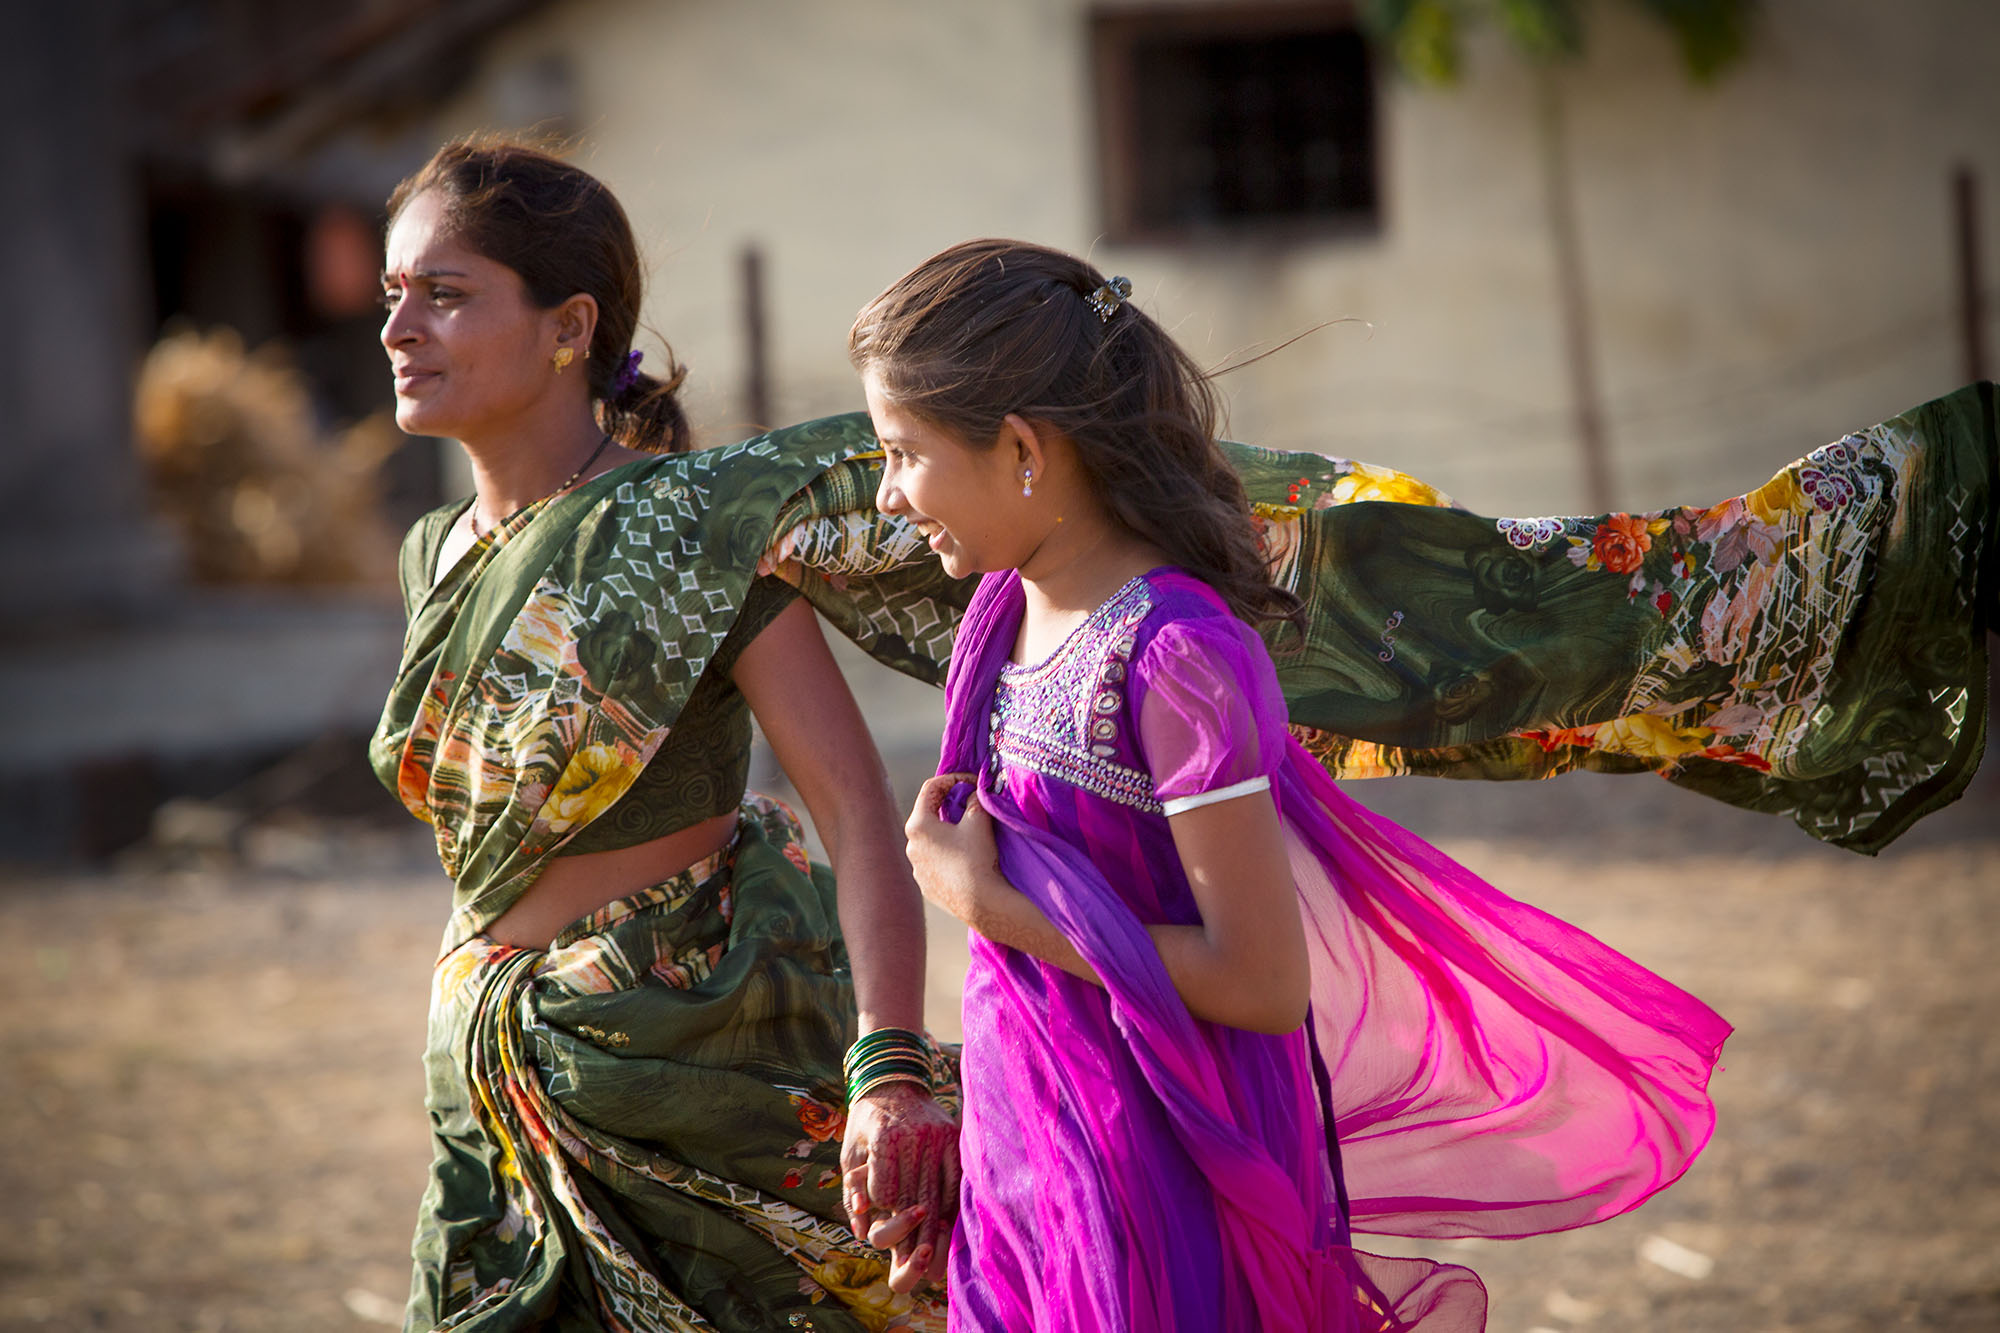 Mother and daughter in Maharashtra, India.